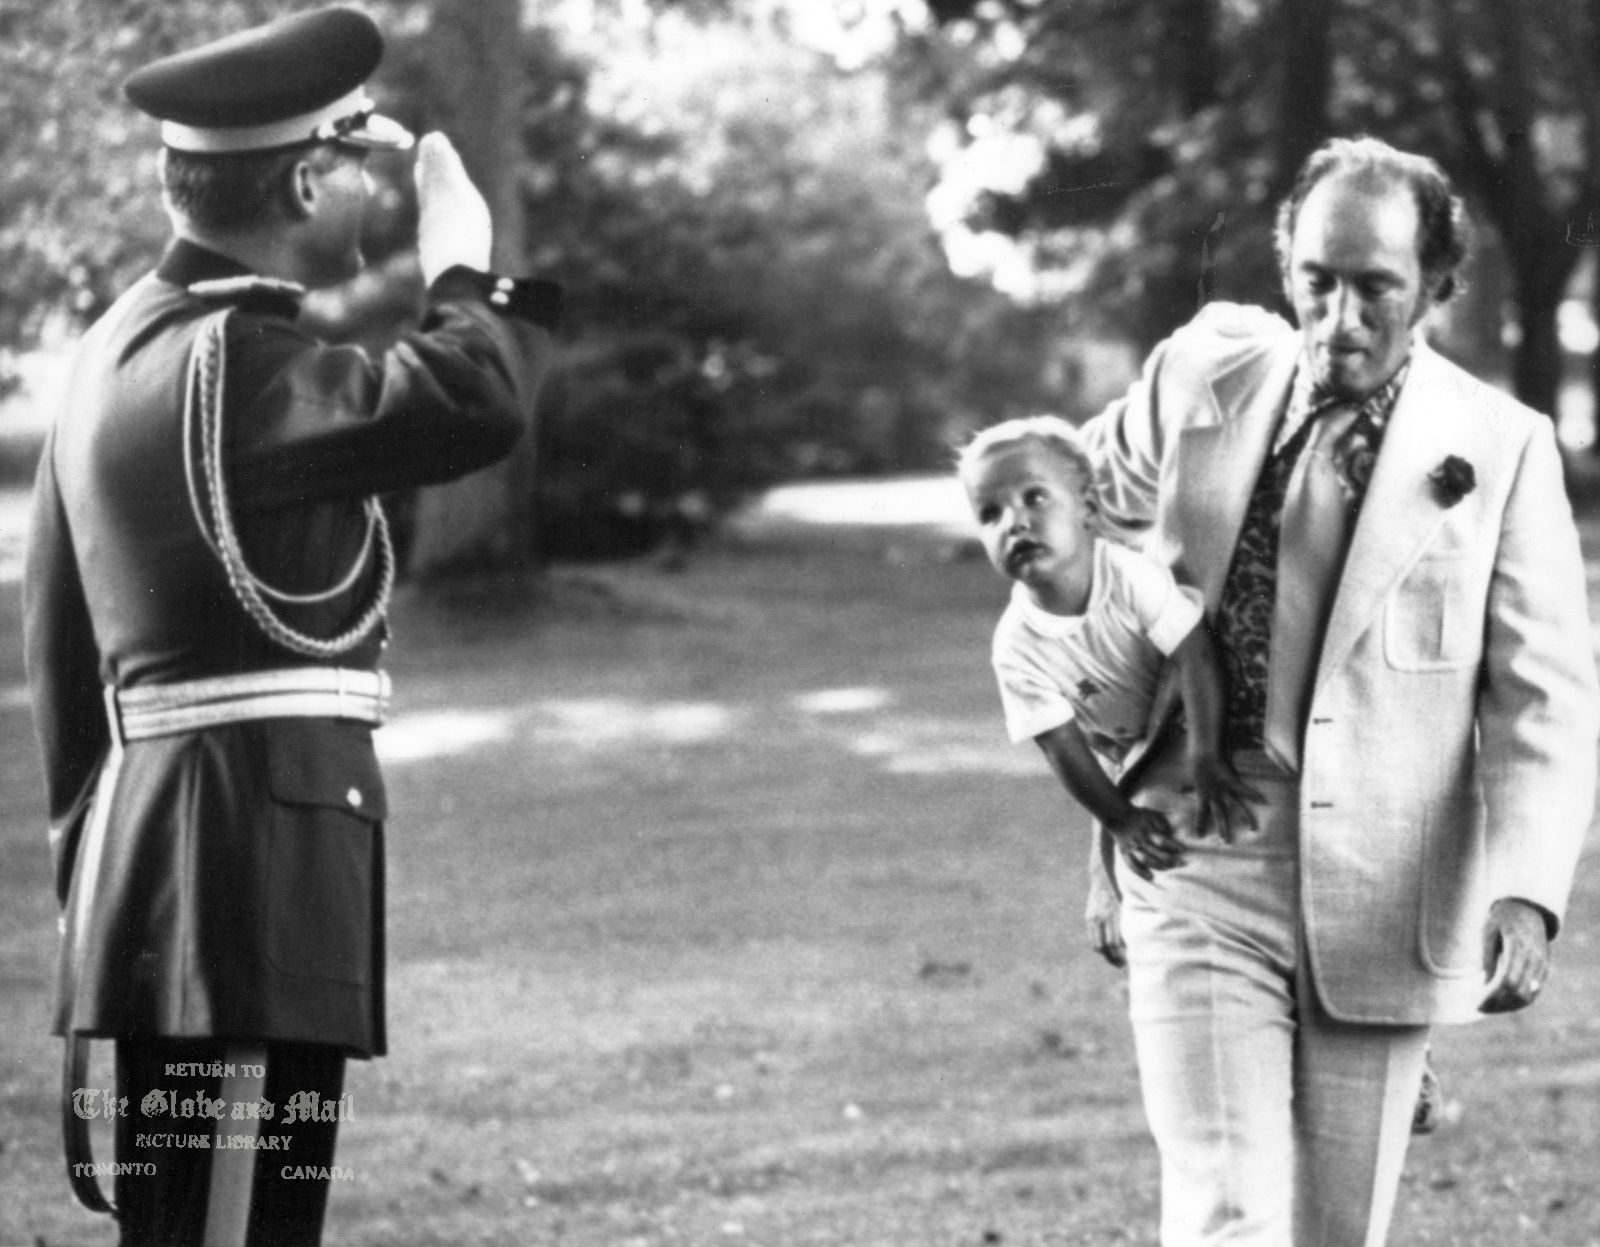 Prime Minister Pierre Trudeau walks towards the camera, cradling a young Justin under his arm like a football, while at left a uniformed RCMP officer performs a smart salute at Government House in Ottawa, August 10, 1973. Photo by Peter Bregg / CP